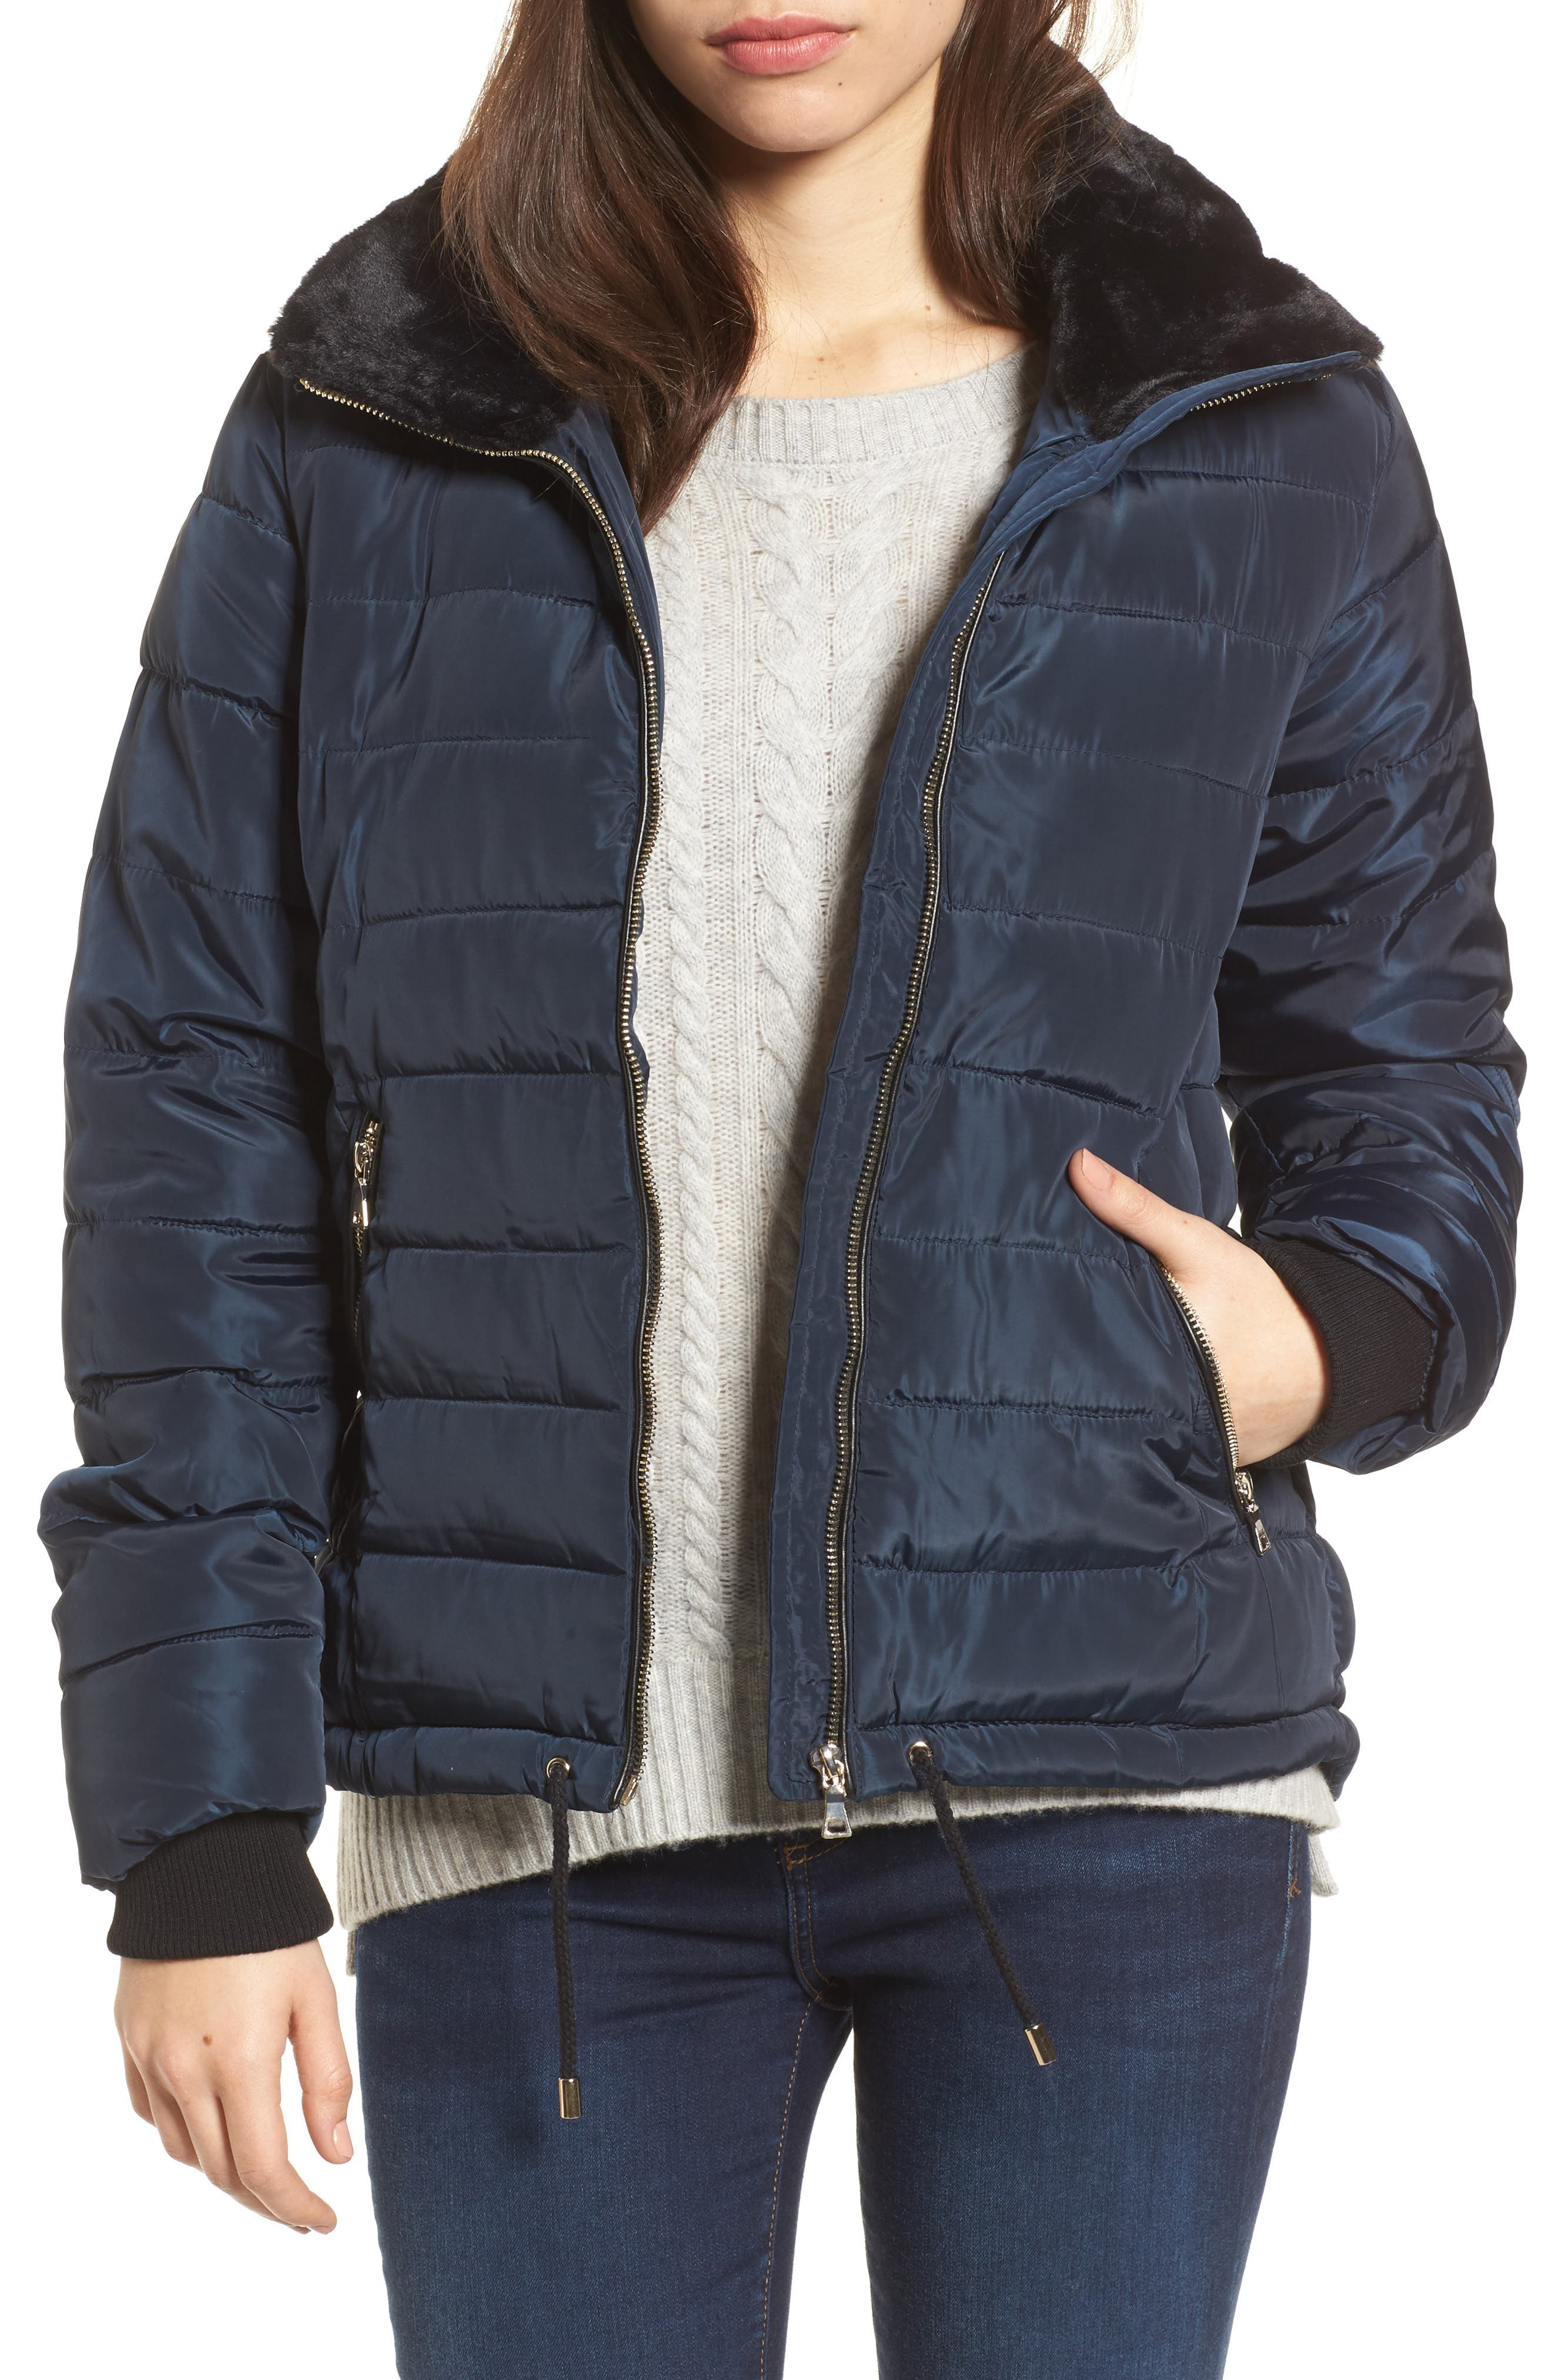 Puffer Jacket with Faux Fur Collar Lining,                         Main,                         color, Navy Blue